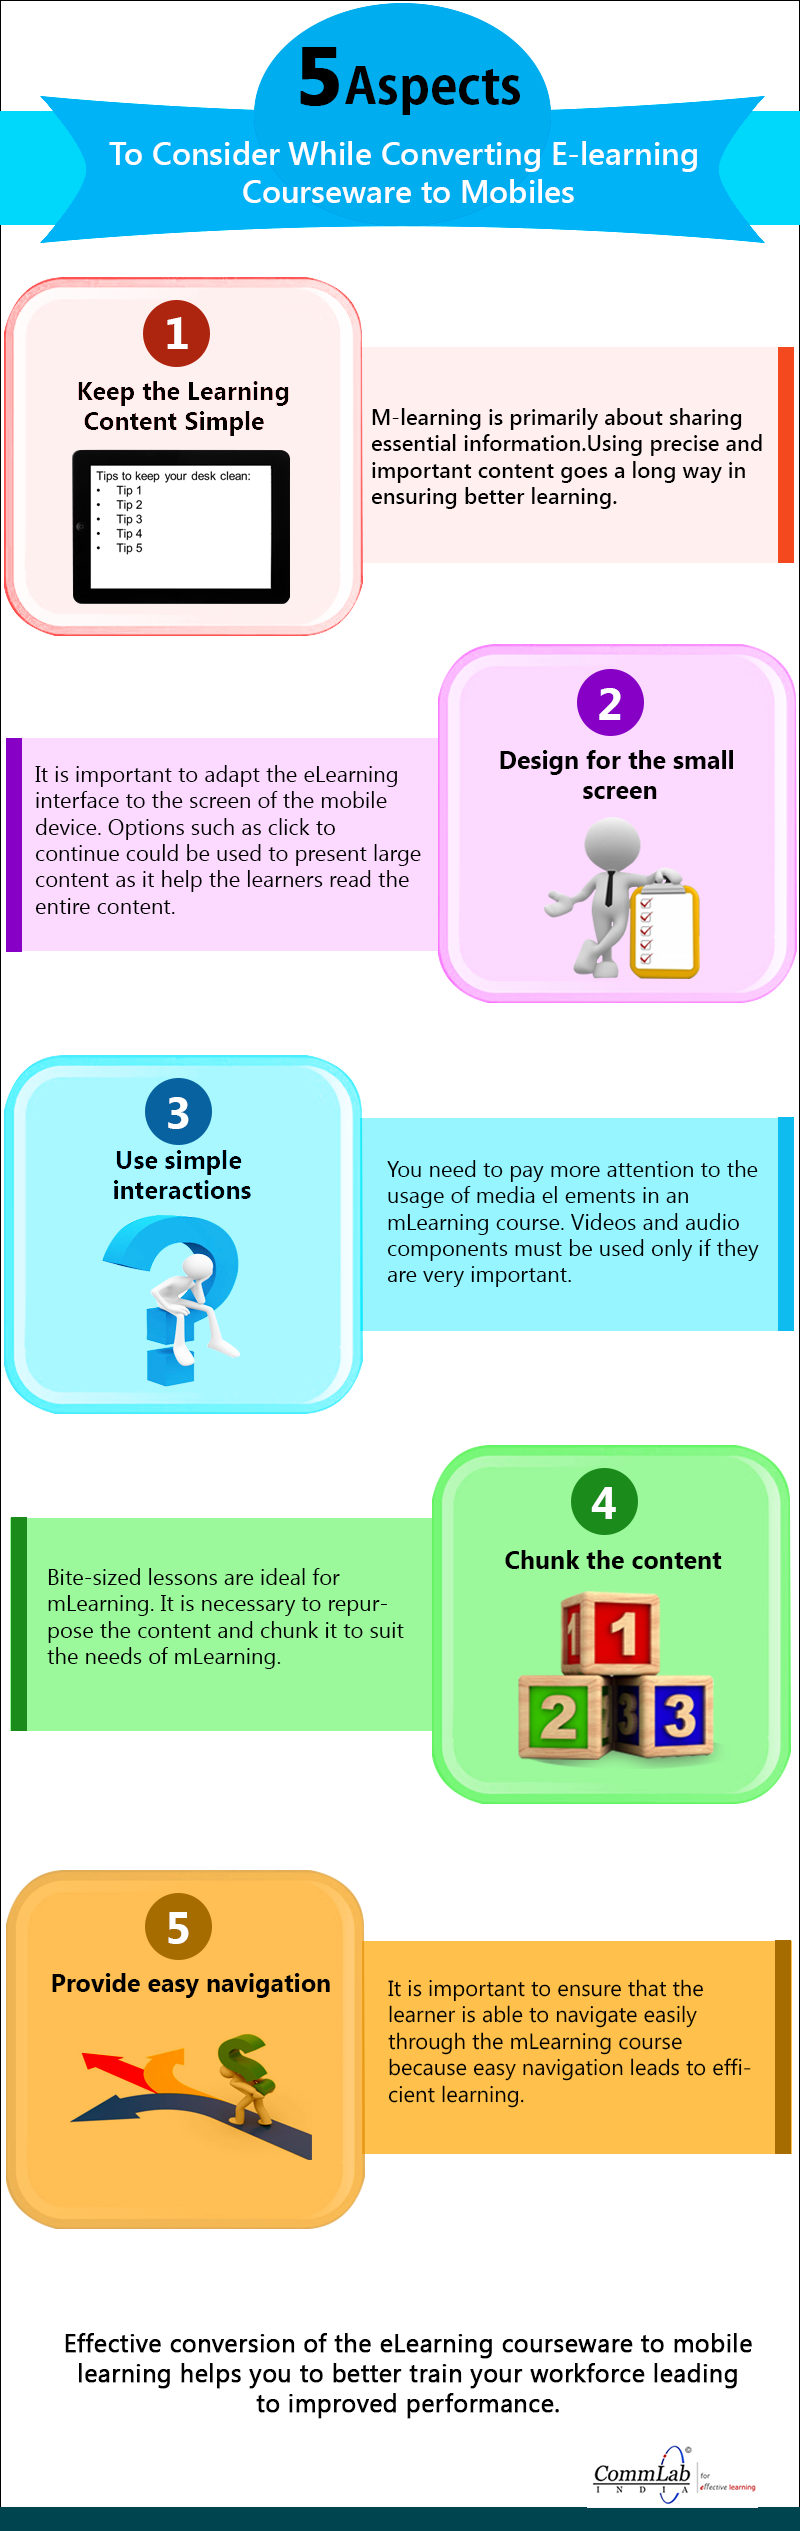 Making E-learning Courses Mobile: 5 Aspects to Consider – An Infographic